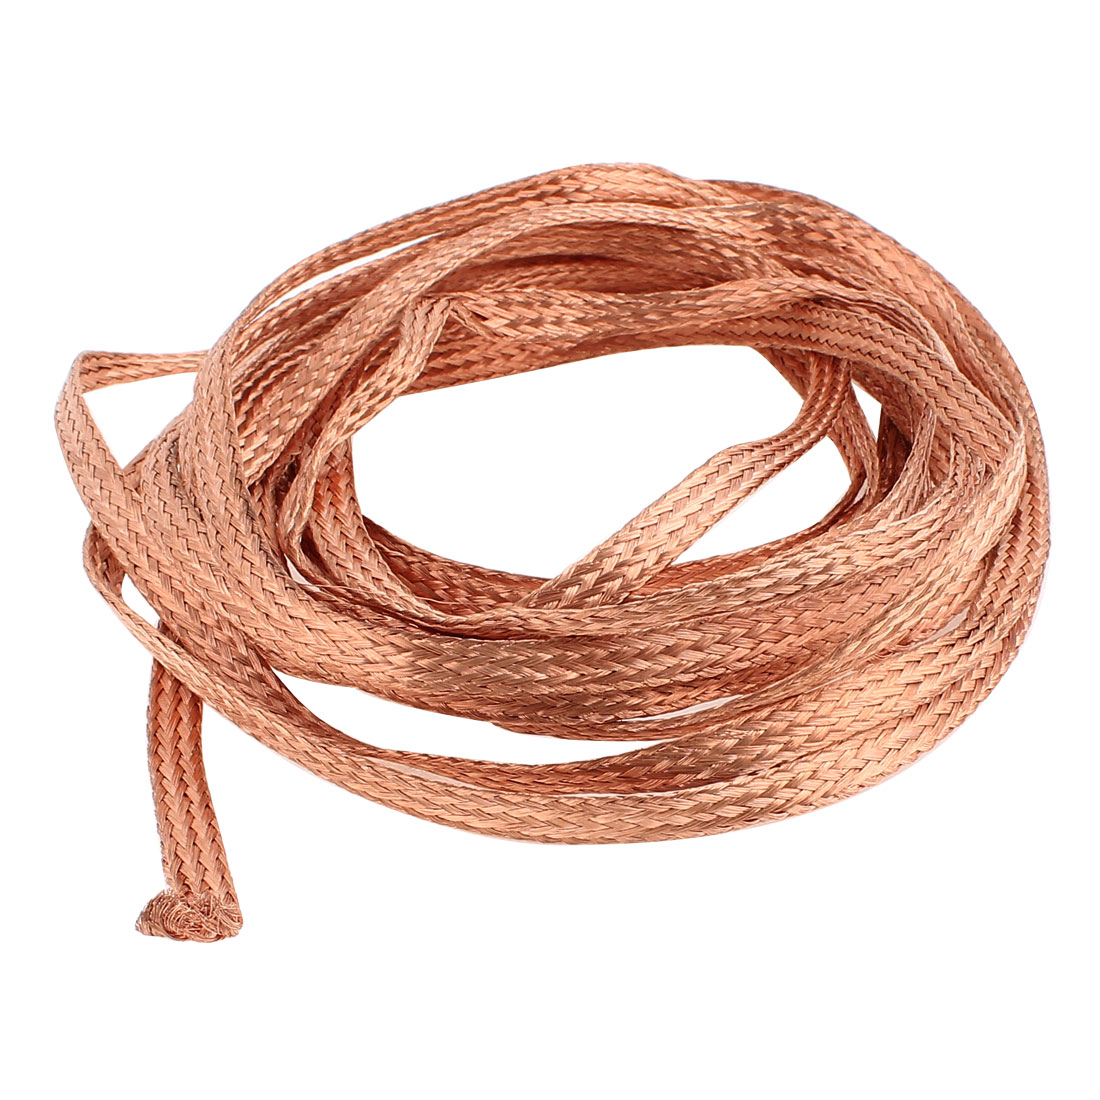 4 Square Millimeter Thickness 5M Length Flat Electrical Bare Braided Copper Wire